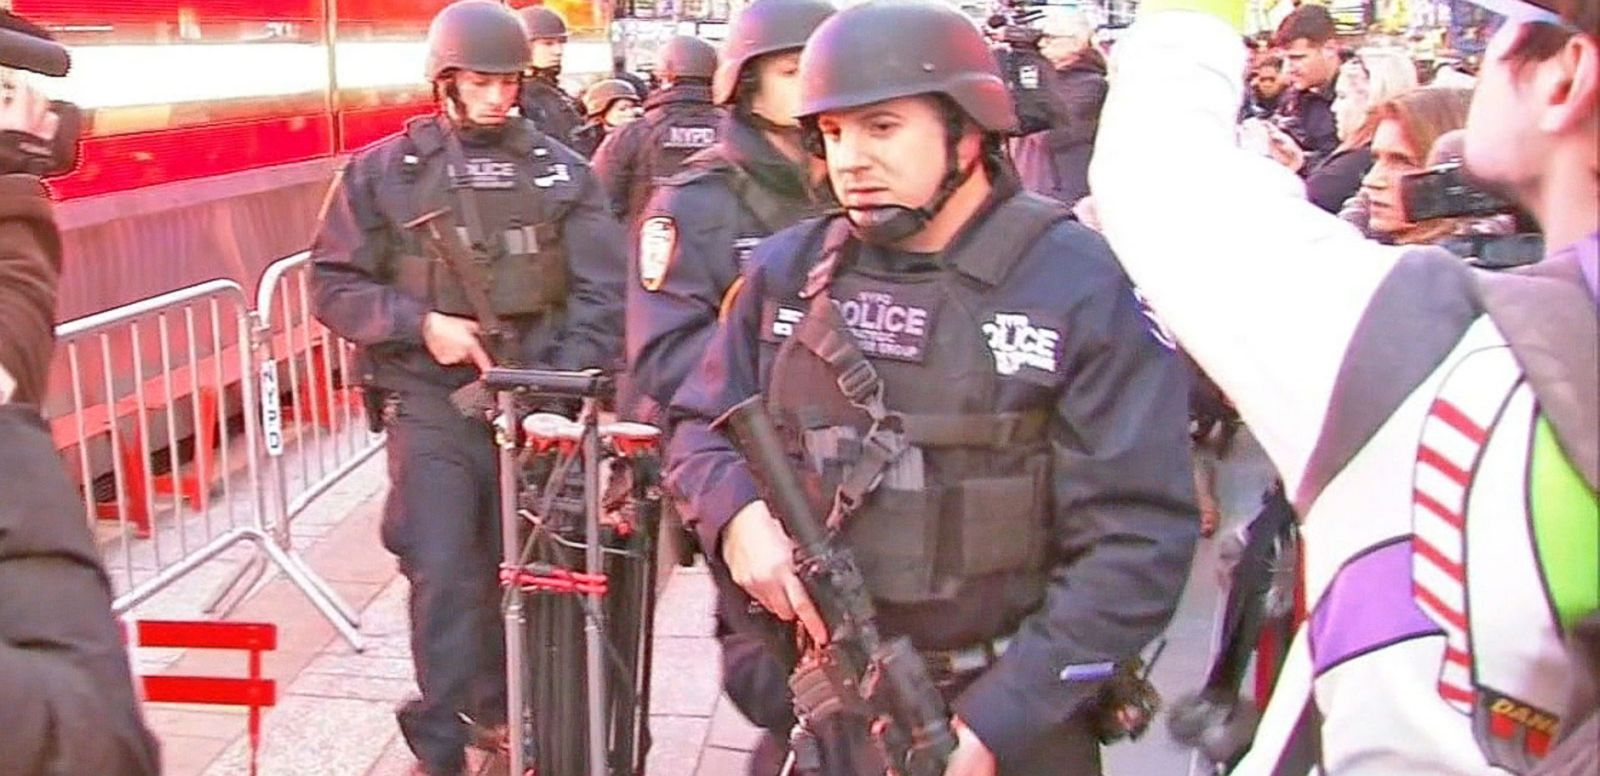 VIDEO: Heightened Security Expected During Gay Pride Events